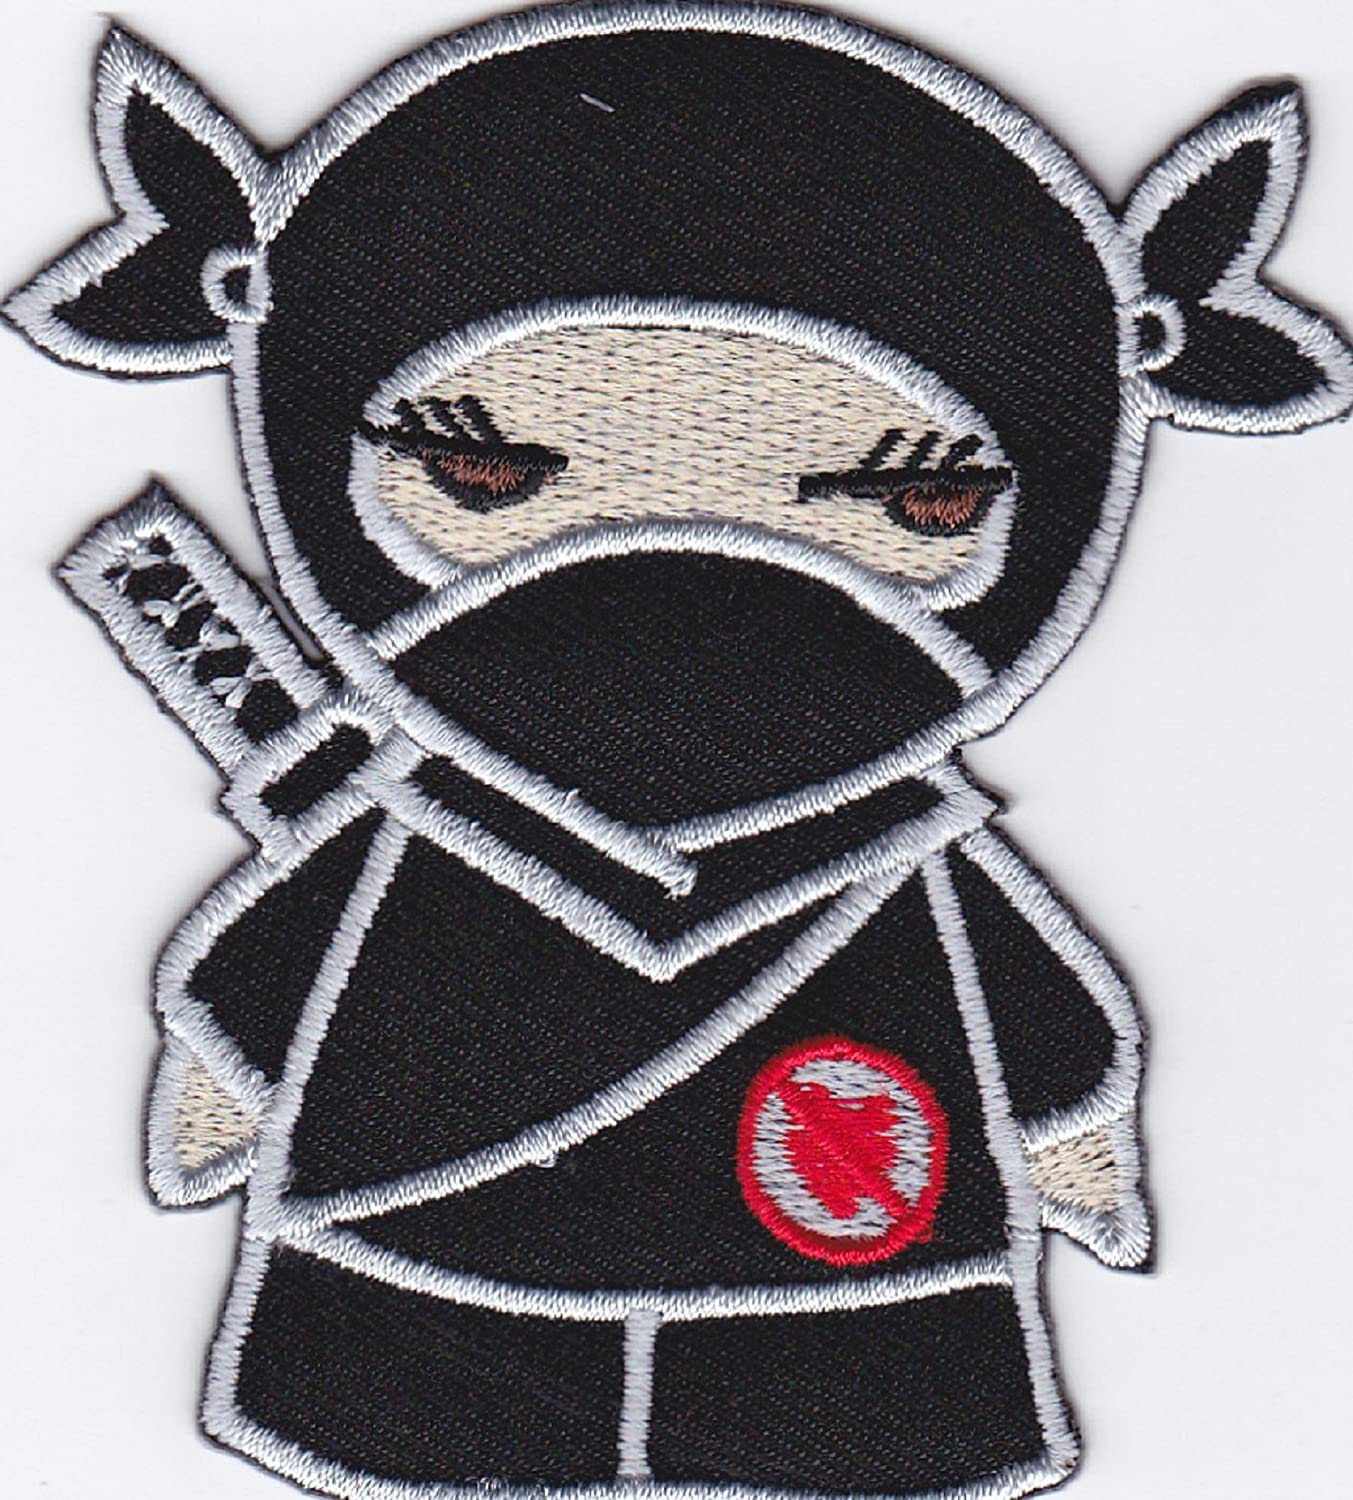 Amazon.com: Iron on Patch Sew on Embroidered Application ...